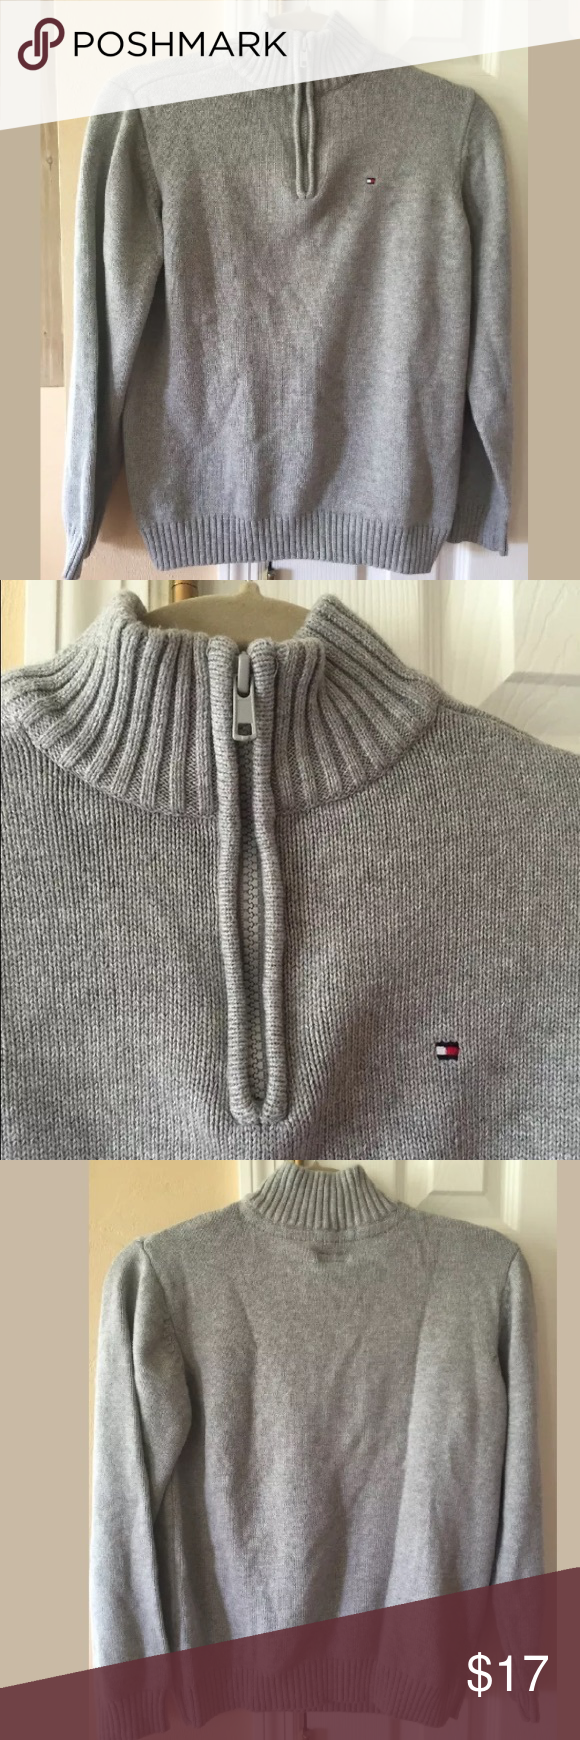 TOMMY HILFIGER Gray 1/2 Zip Knit Sweater Pullover TOMMY HILFIGER Gray 1/2 Zip Knit Sweater Pullover  Boys Large 16/18  100% Cotton Preowned Tommy Hilfiger Shirts & Tops Sweaters